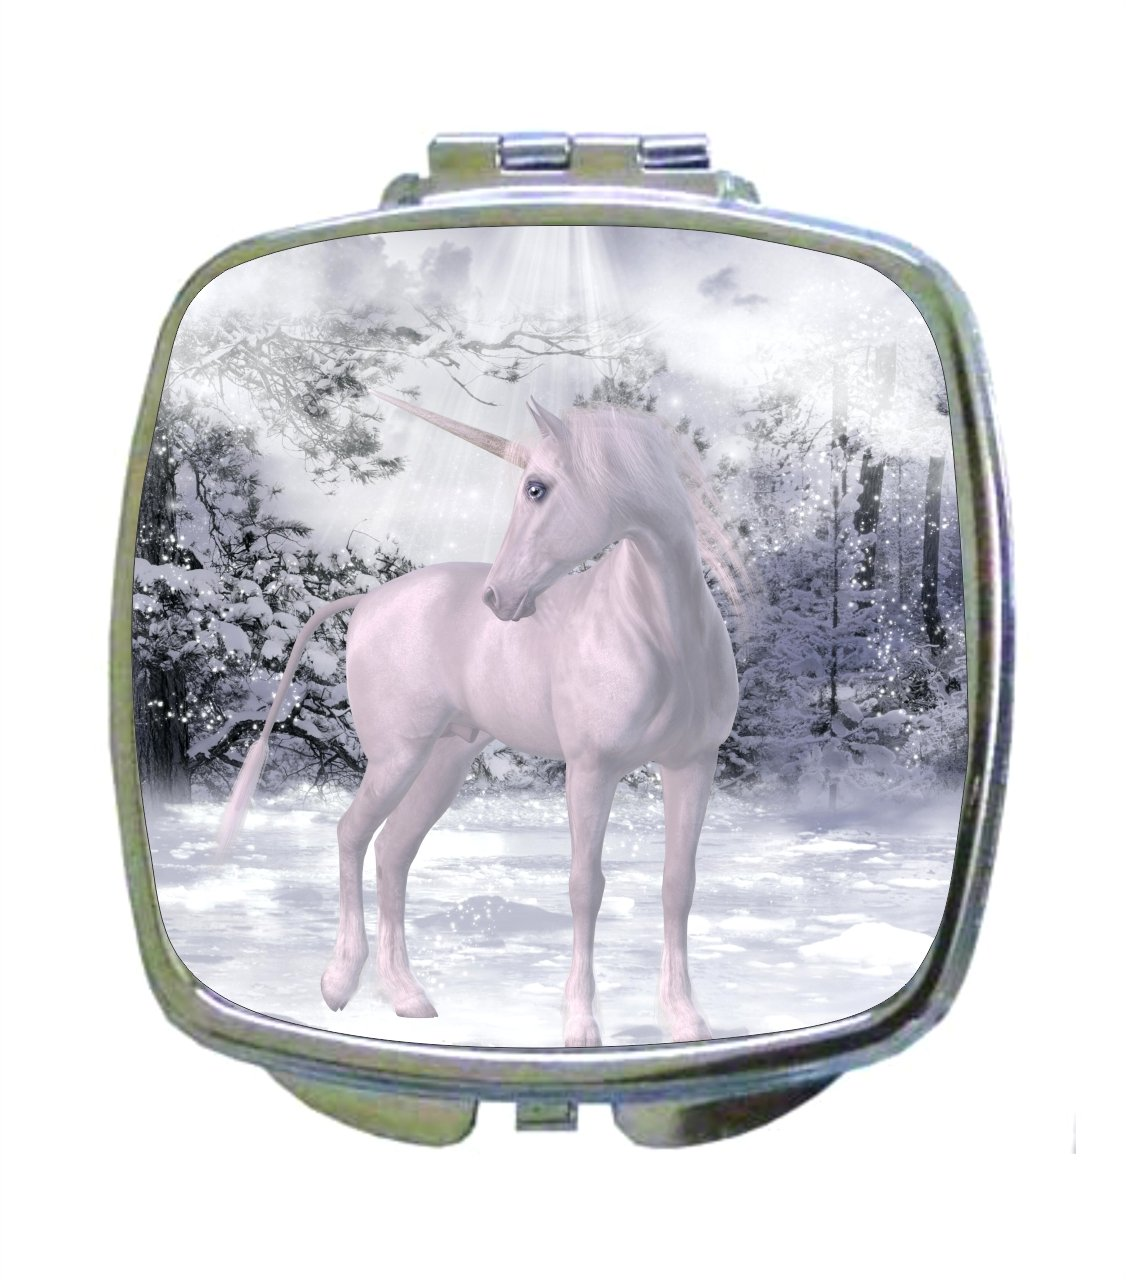 White Unicorn with a Halo - in the Snowy Woods - Compact Mirror in Silvertone - Square Shaped - Pocket Sized